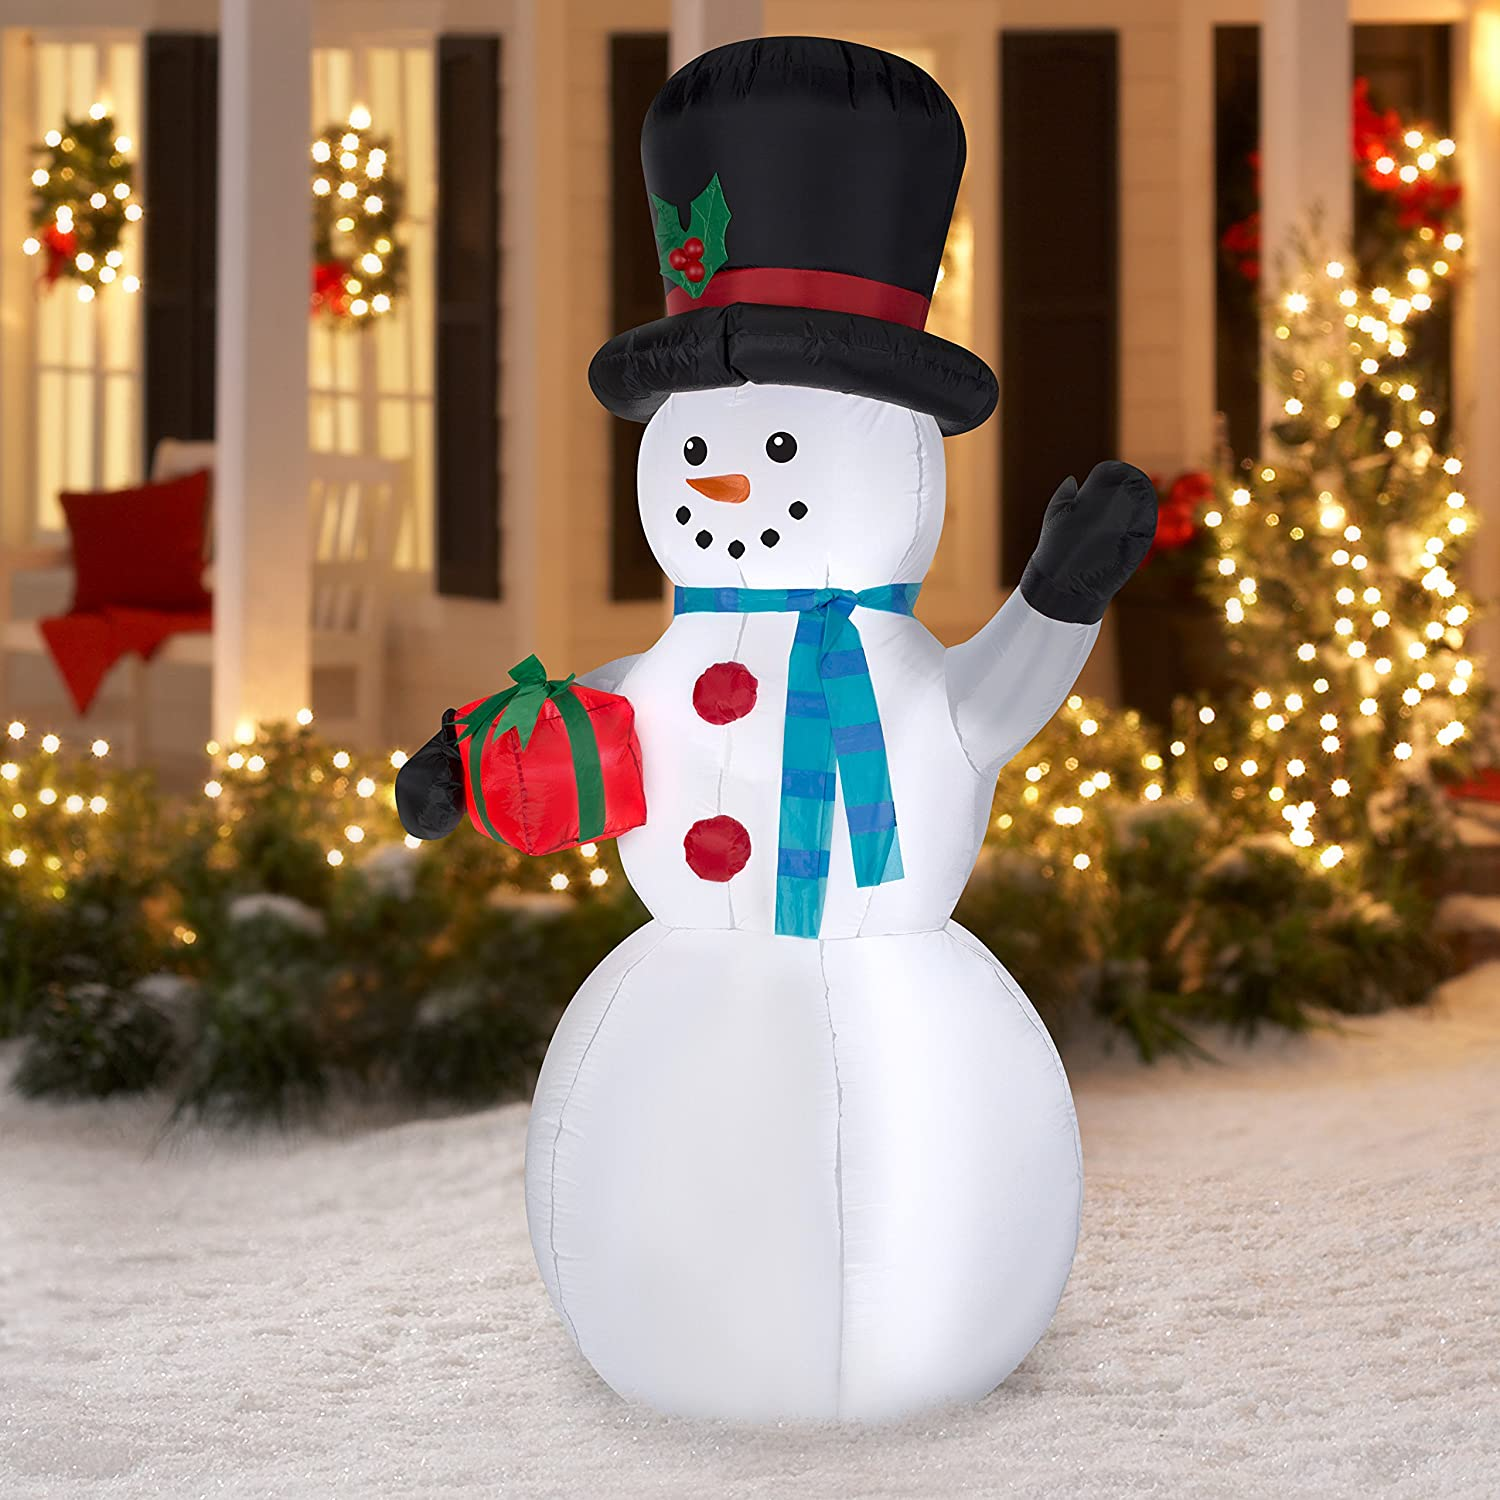 Amazoncom Airblown Christmas Inflatable Snowman 7Ft Tall Cell Phones &